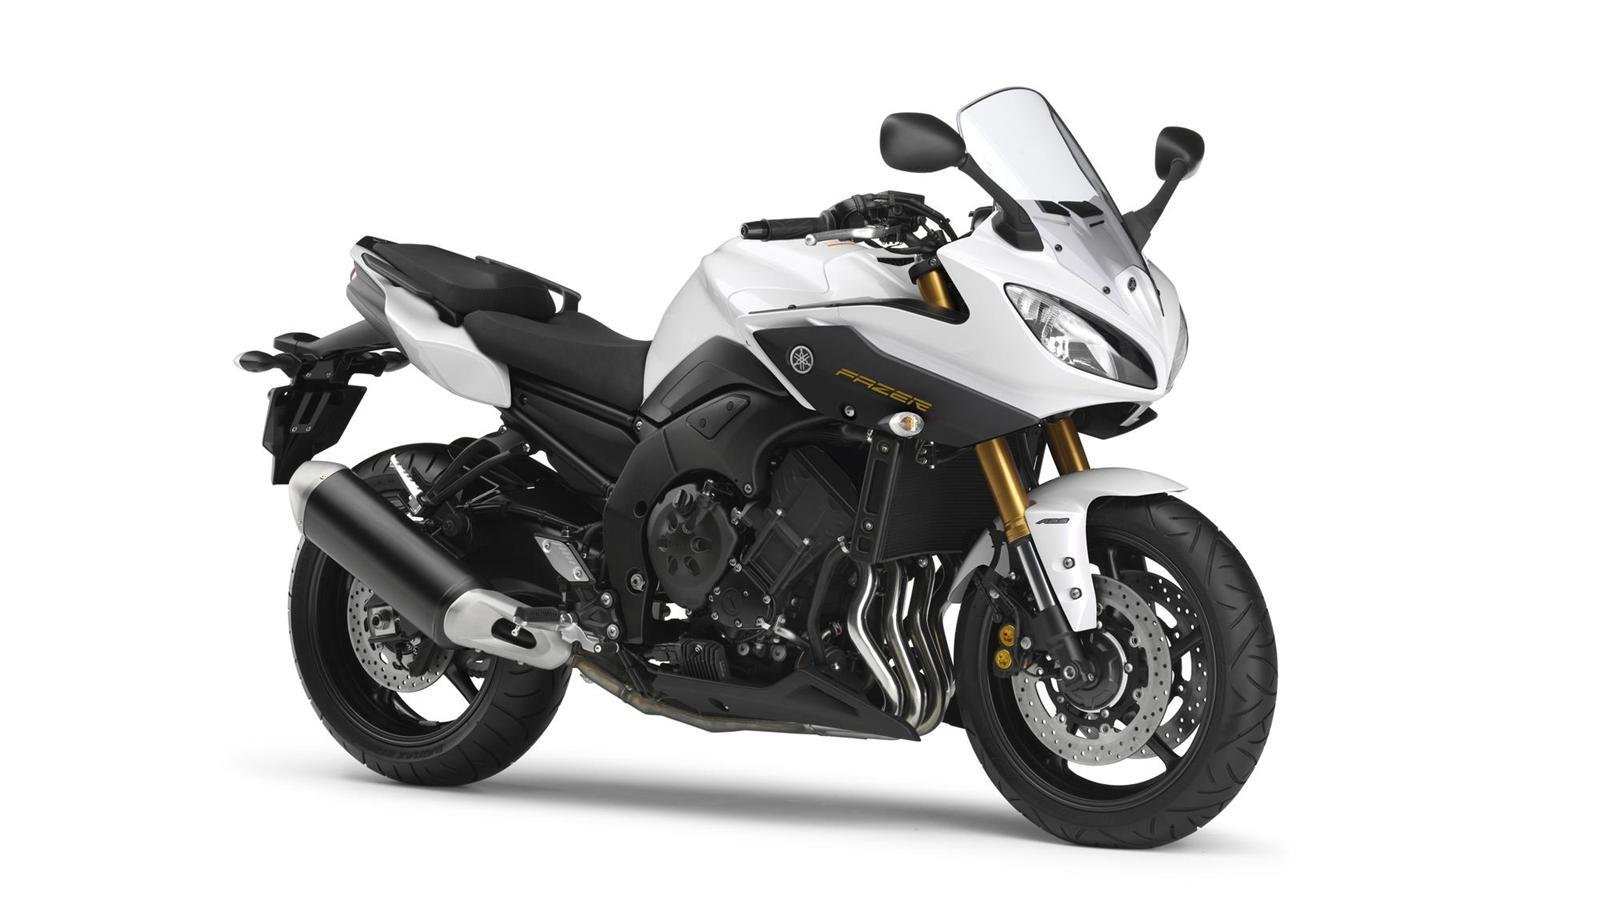 3 Wheel Motorcycle >> 2013 Yamaha Fazer8 ABS Review - Top Speed